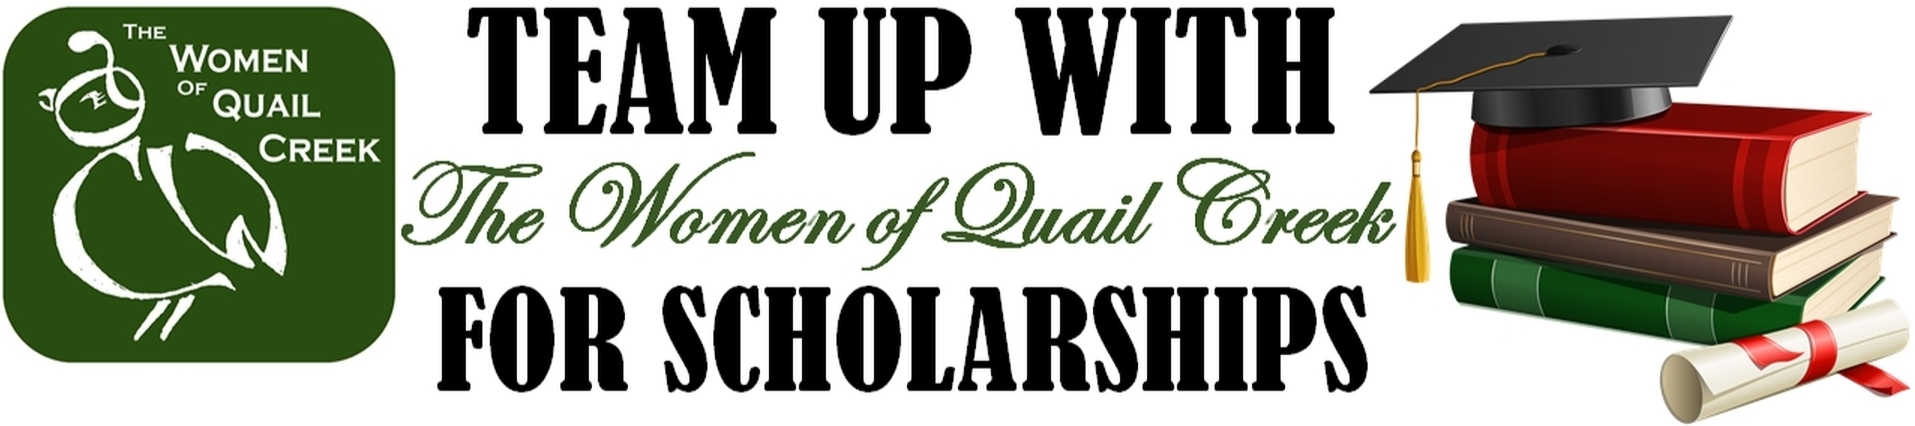 Scholarships 2017 header (2A) THIS ONE edited